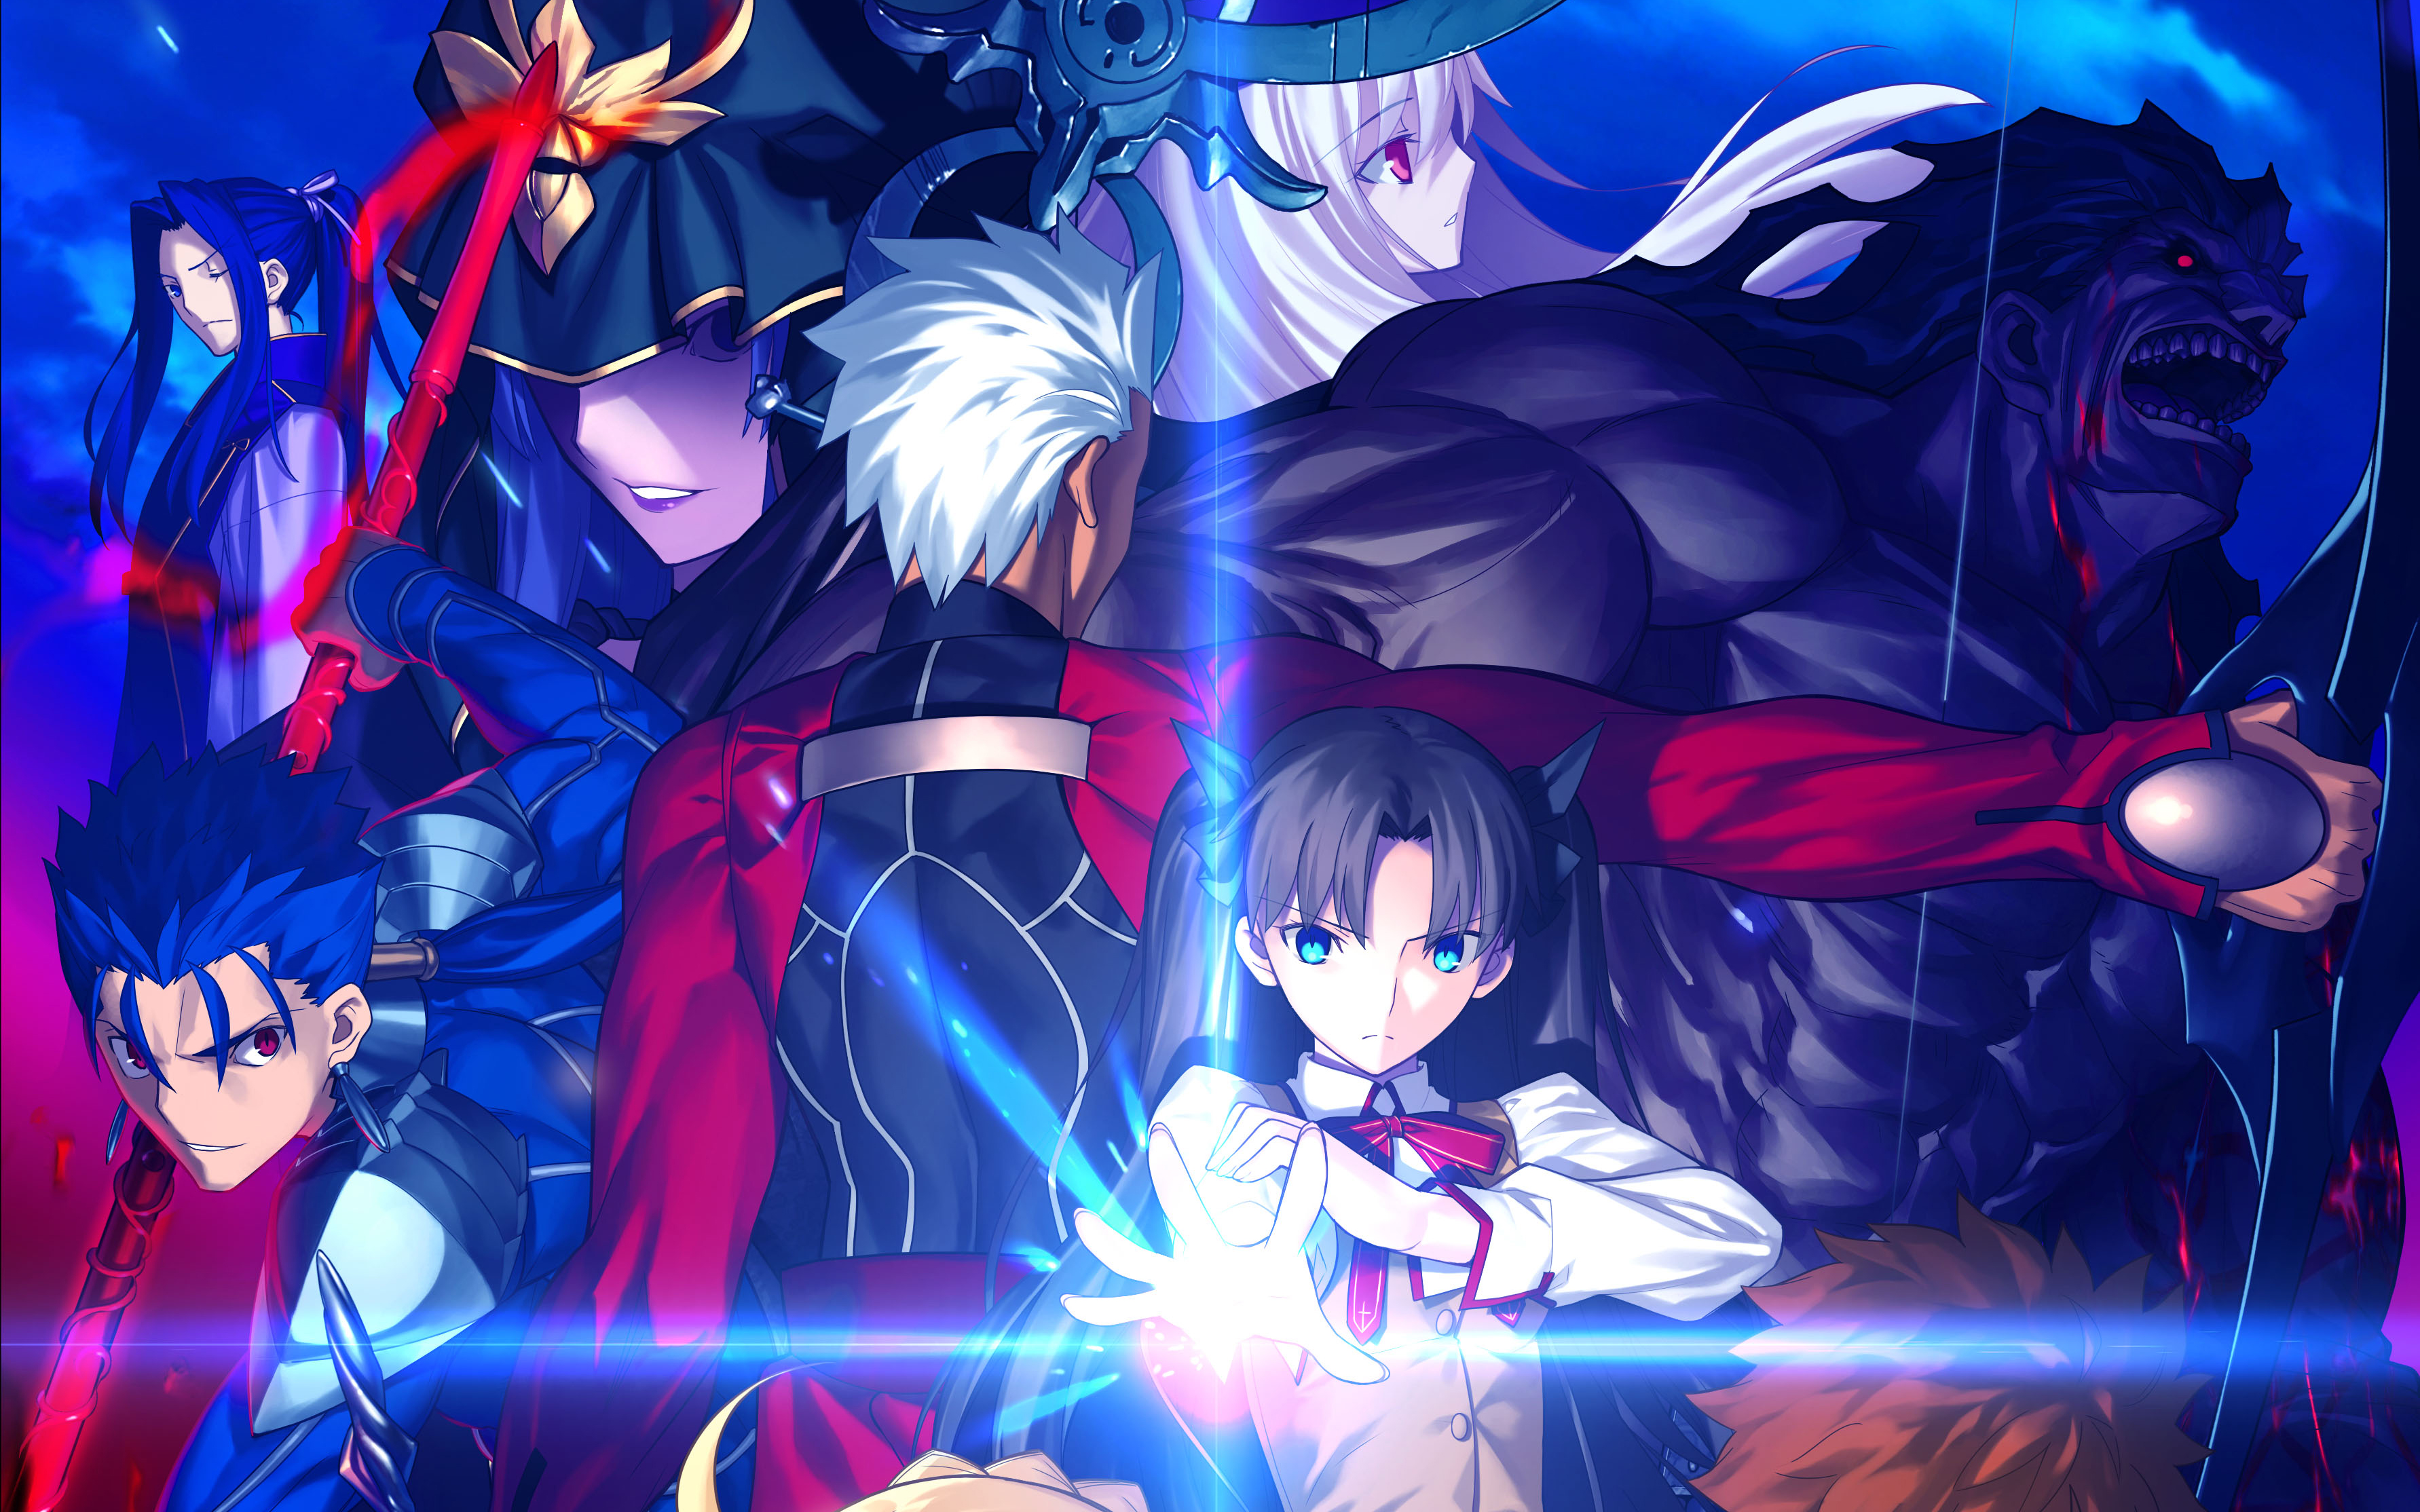 Unlimited Blade Works Hd Wallpaper Fate Stay Night Ubw 480145